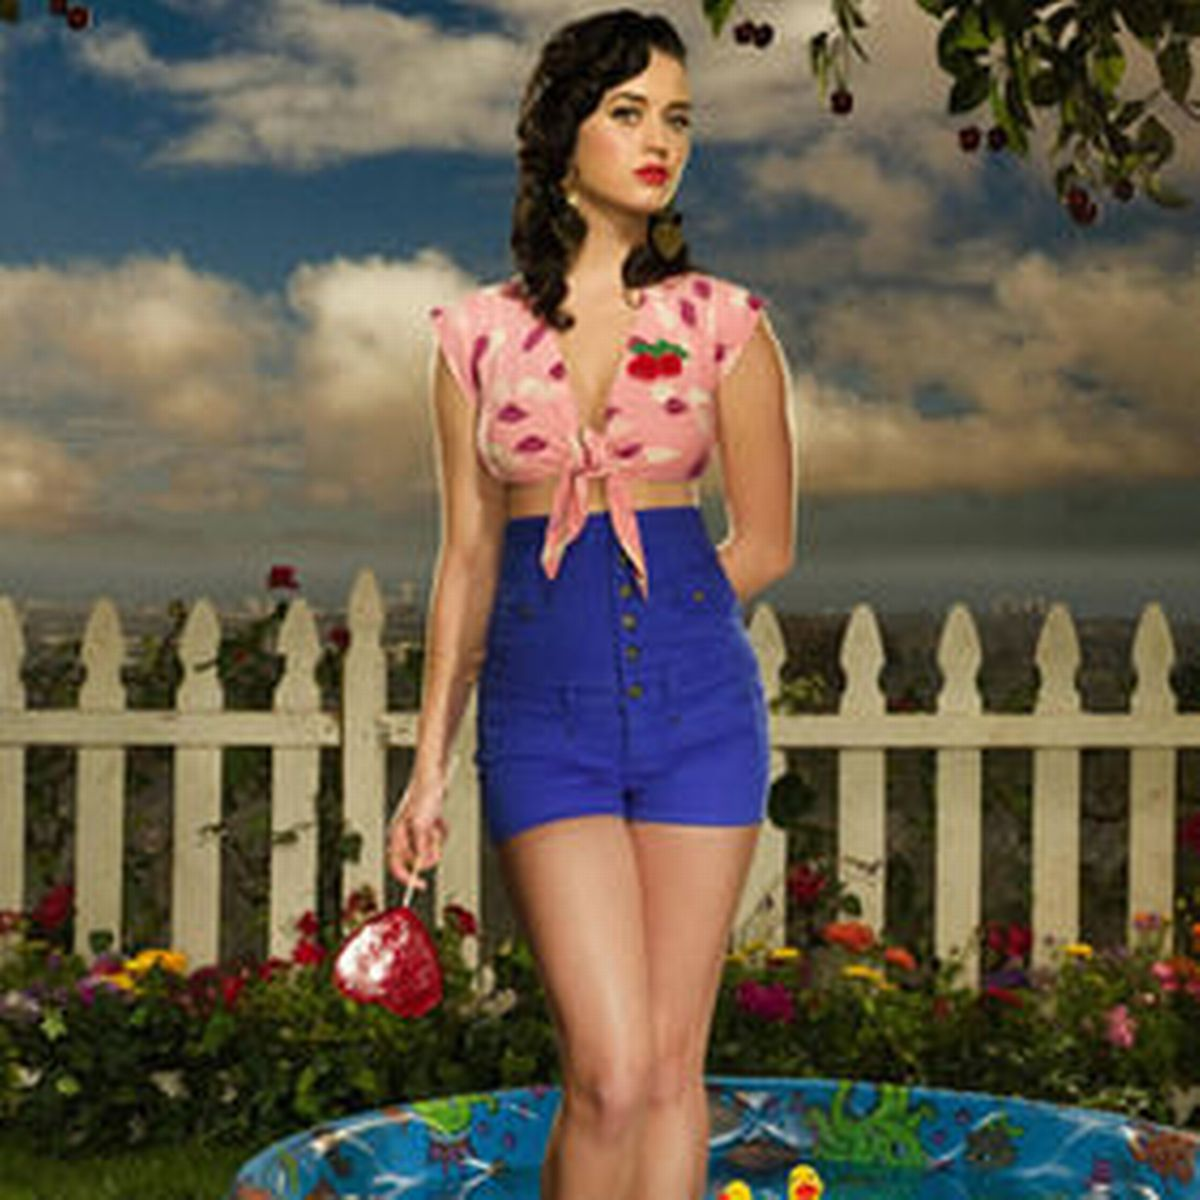 Katy Perry Hottest Video photo 28